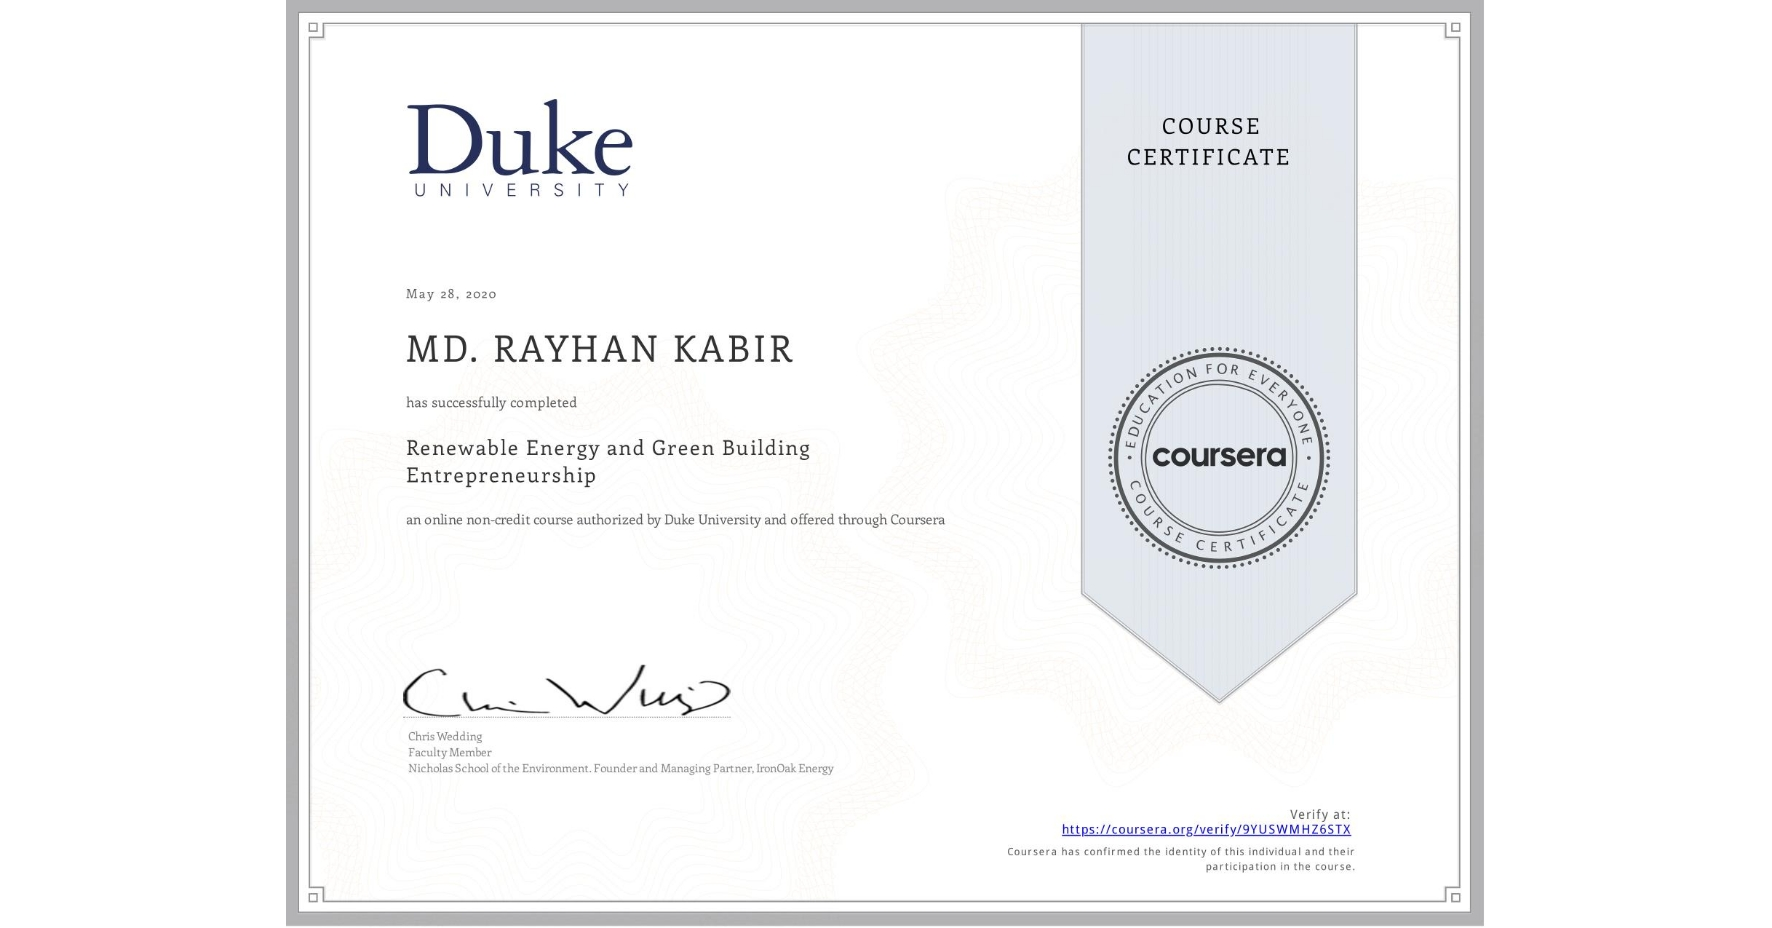 View certificate for MD. RAYHAN  KABIR, Renewable Energy and Green Building Entrepreneurship, an online non-credit course authorized by Duke University and offered through Coursera